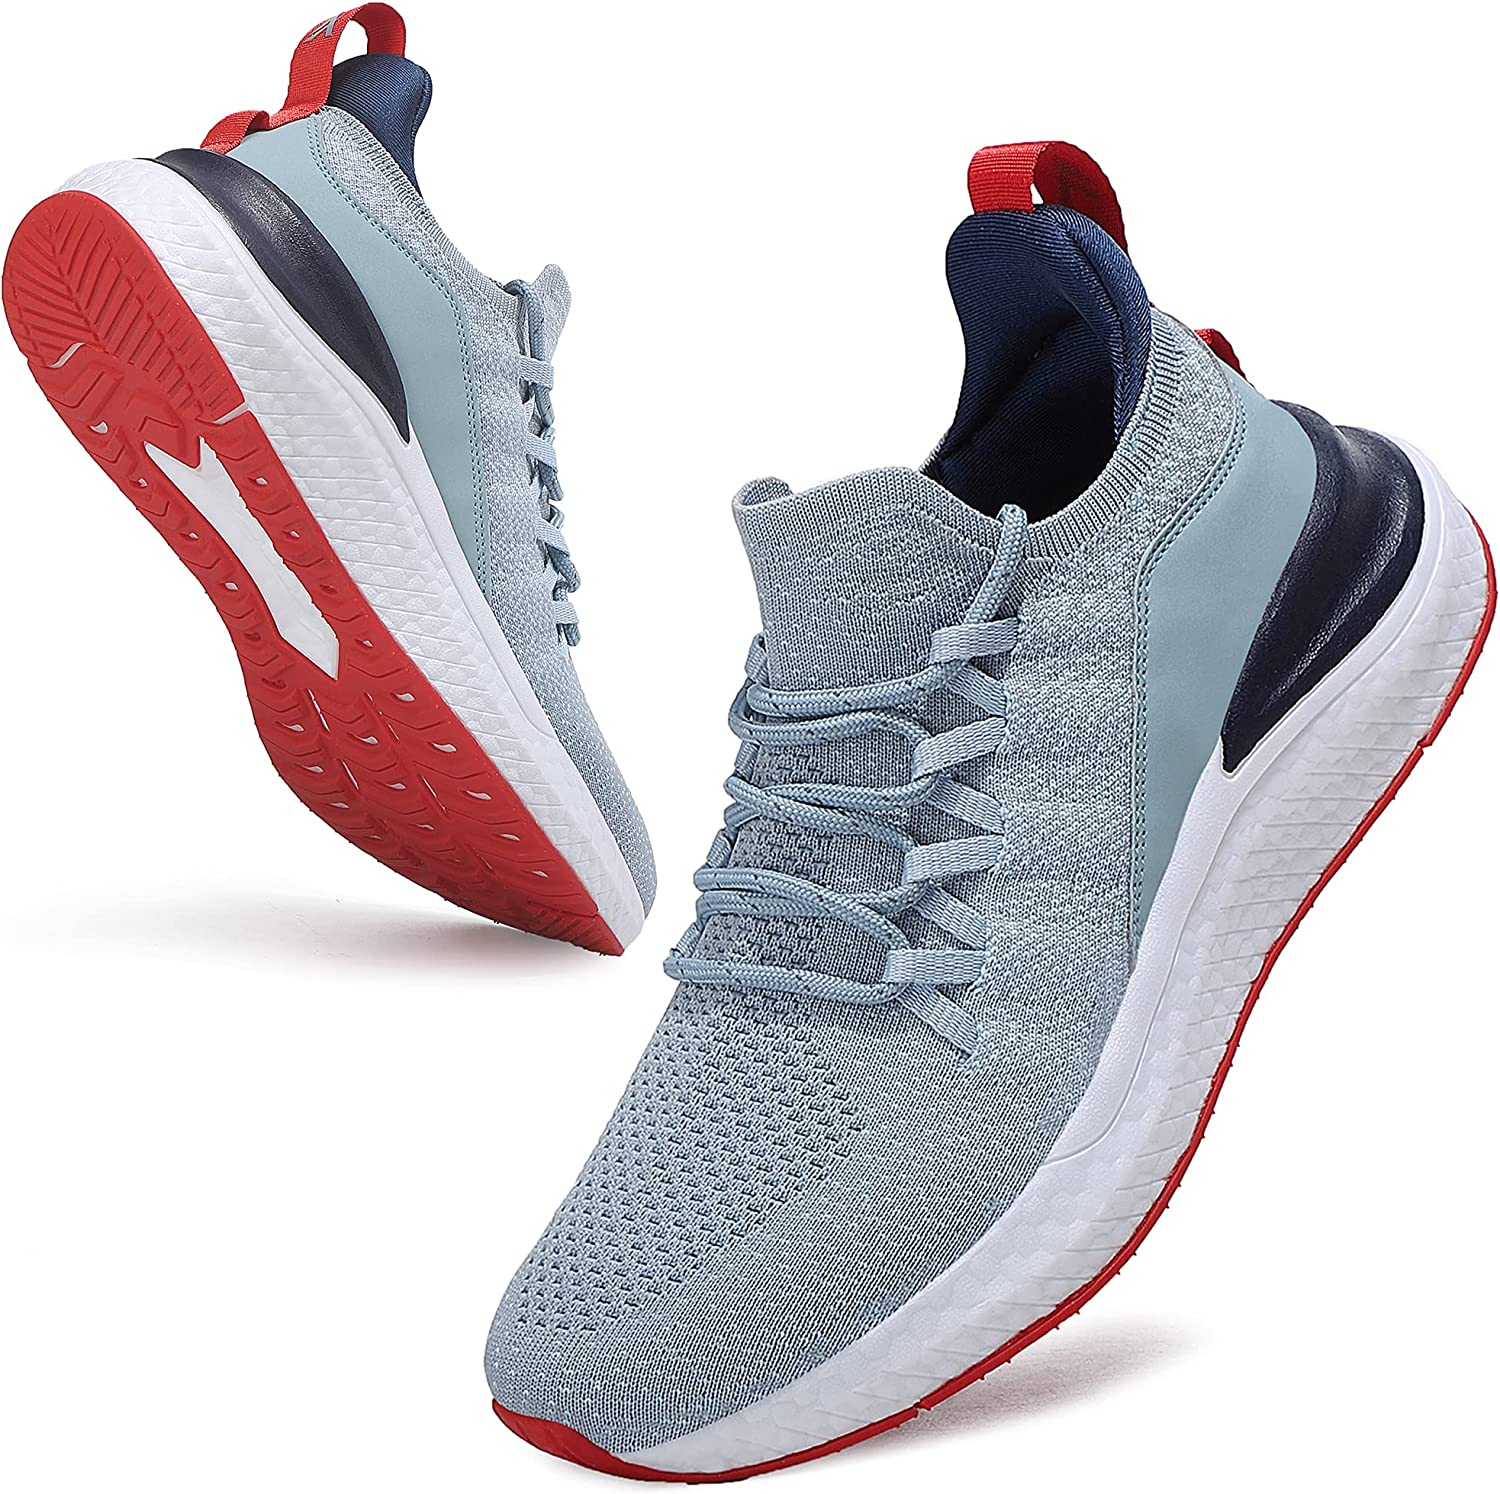 Axcone Mens Running Max 55% OFF Shoes for Gym Wor Manufacturer regenerated product Travel Work Jogging Tennis